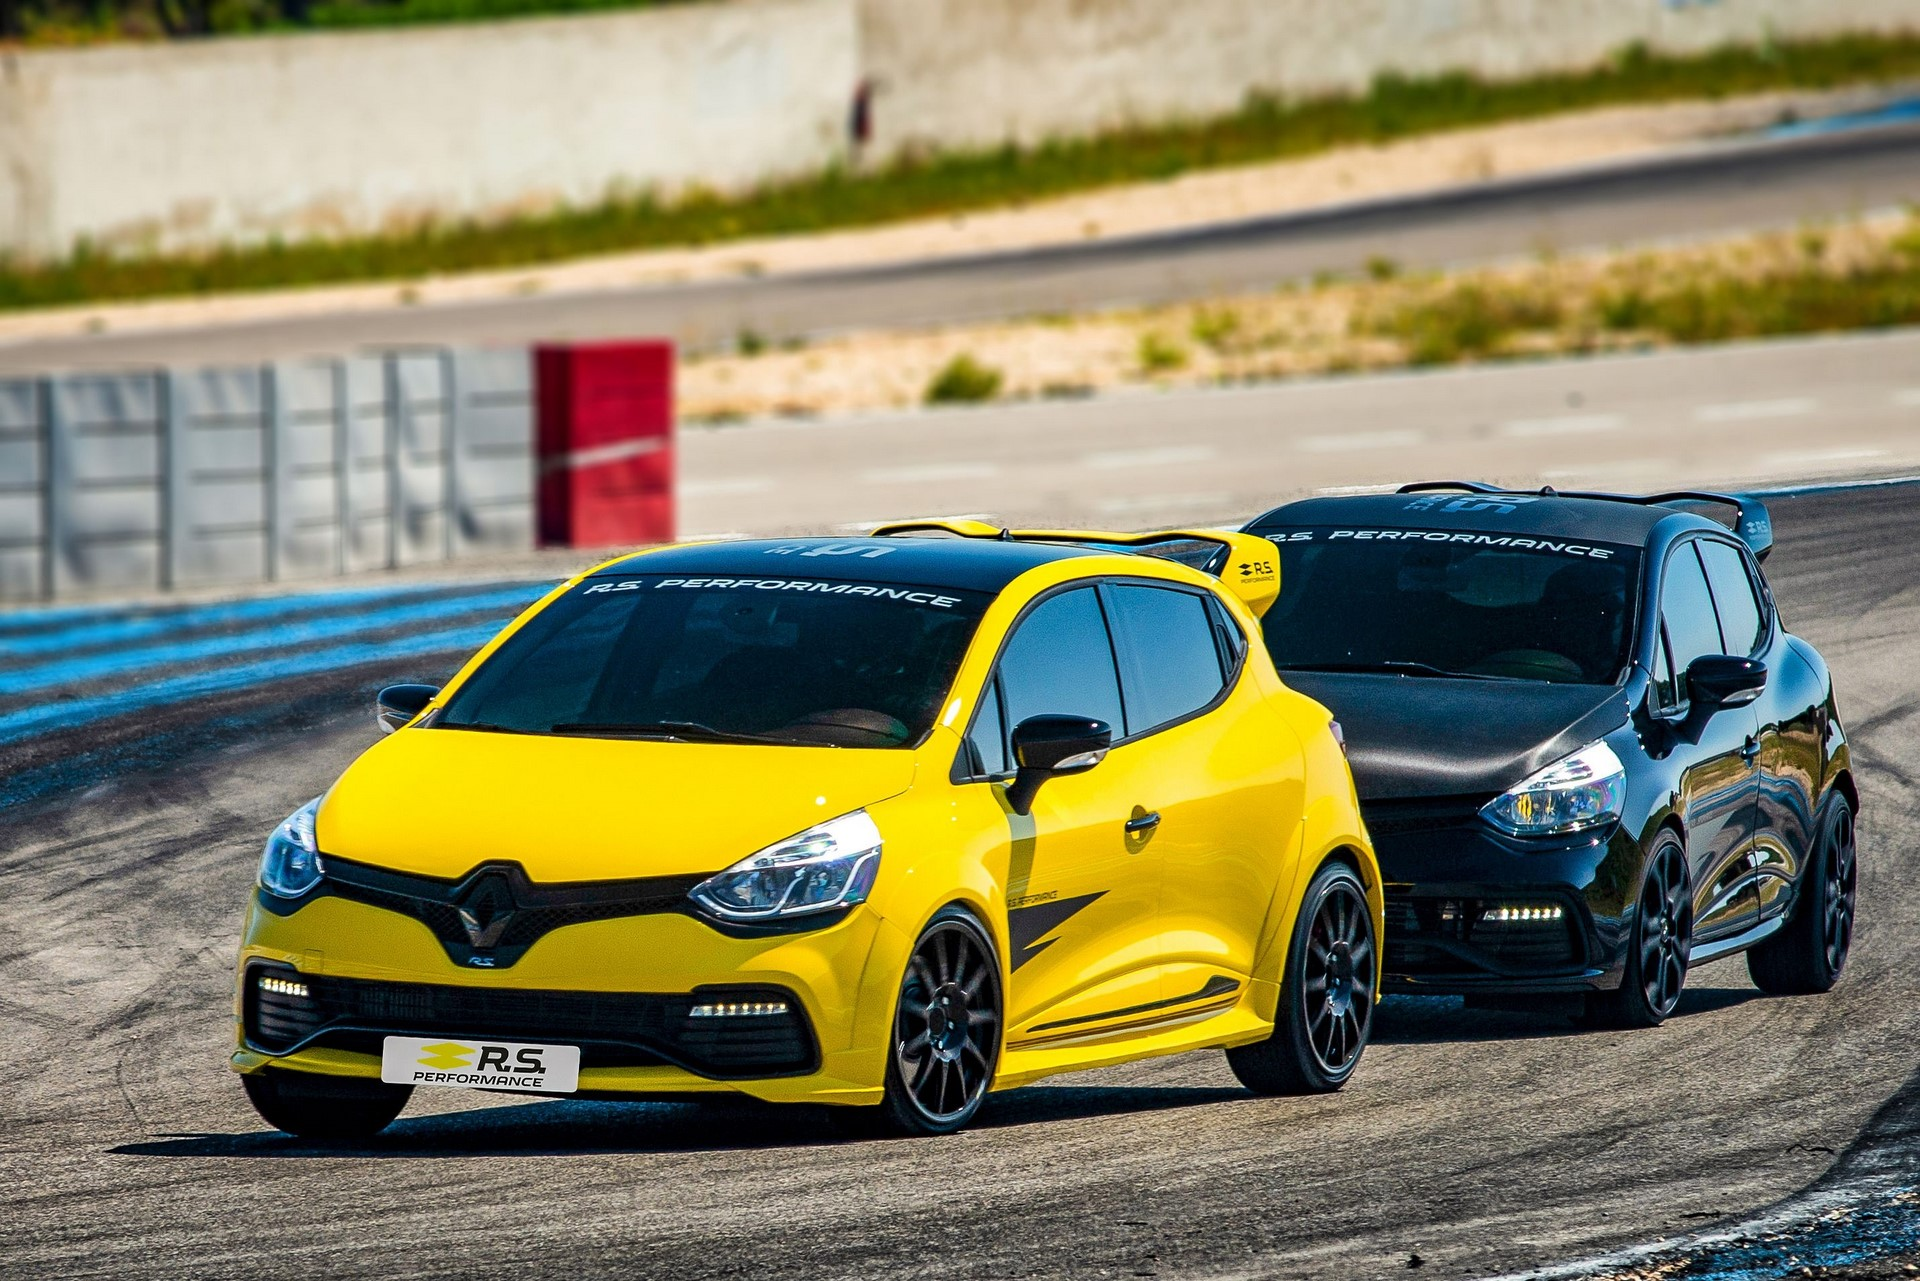 Index of /wp-content/gallery/2018/renault-rs-performance-parts-for